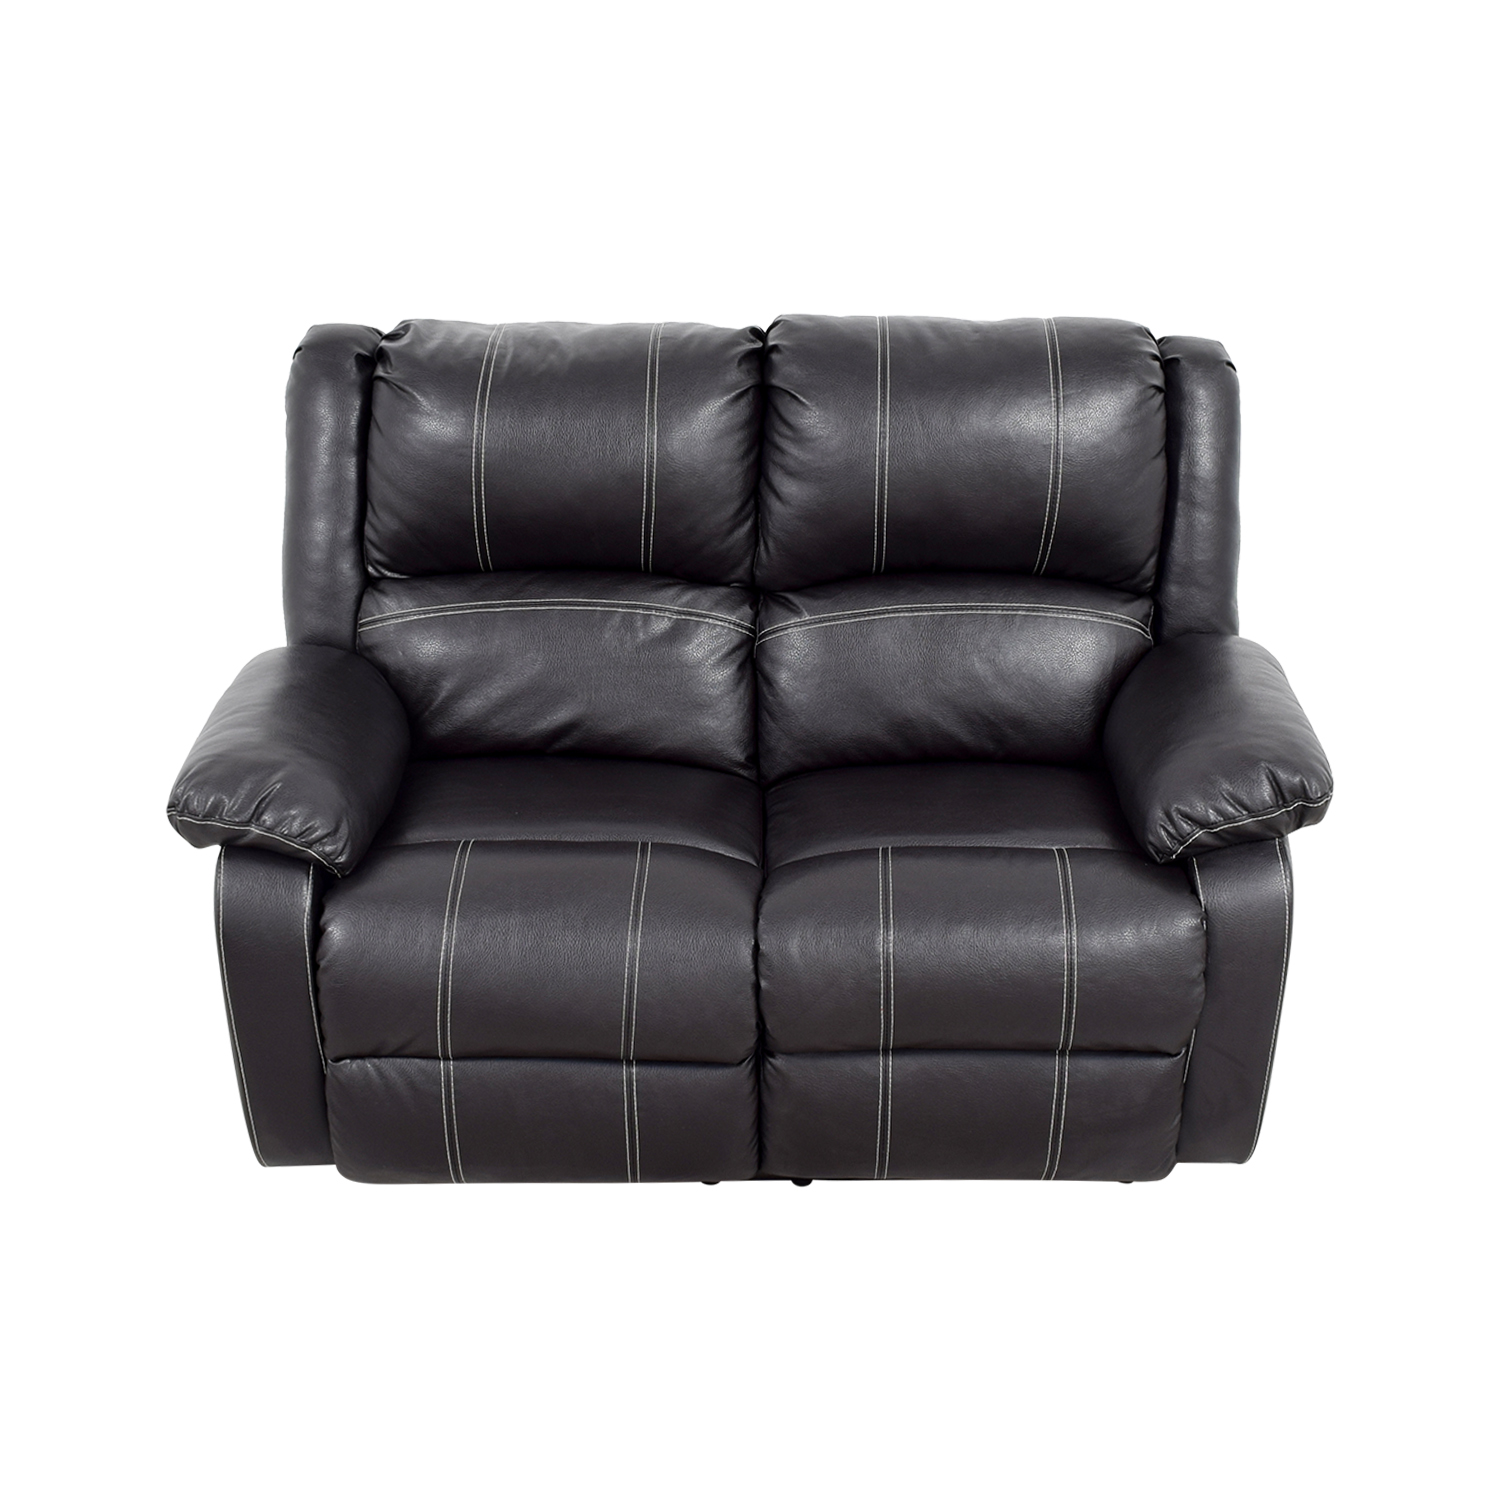 Acme Acme Black Leather Reclining Loveseat nj